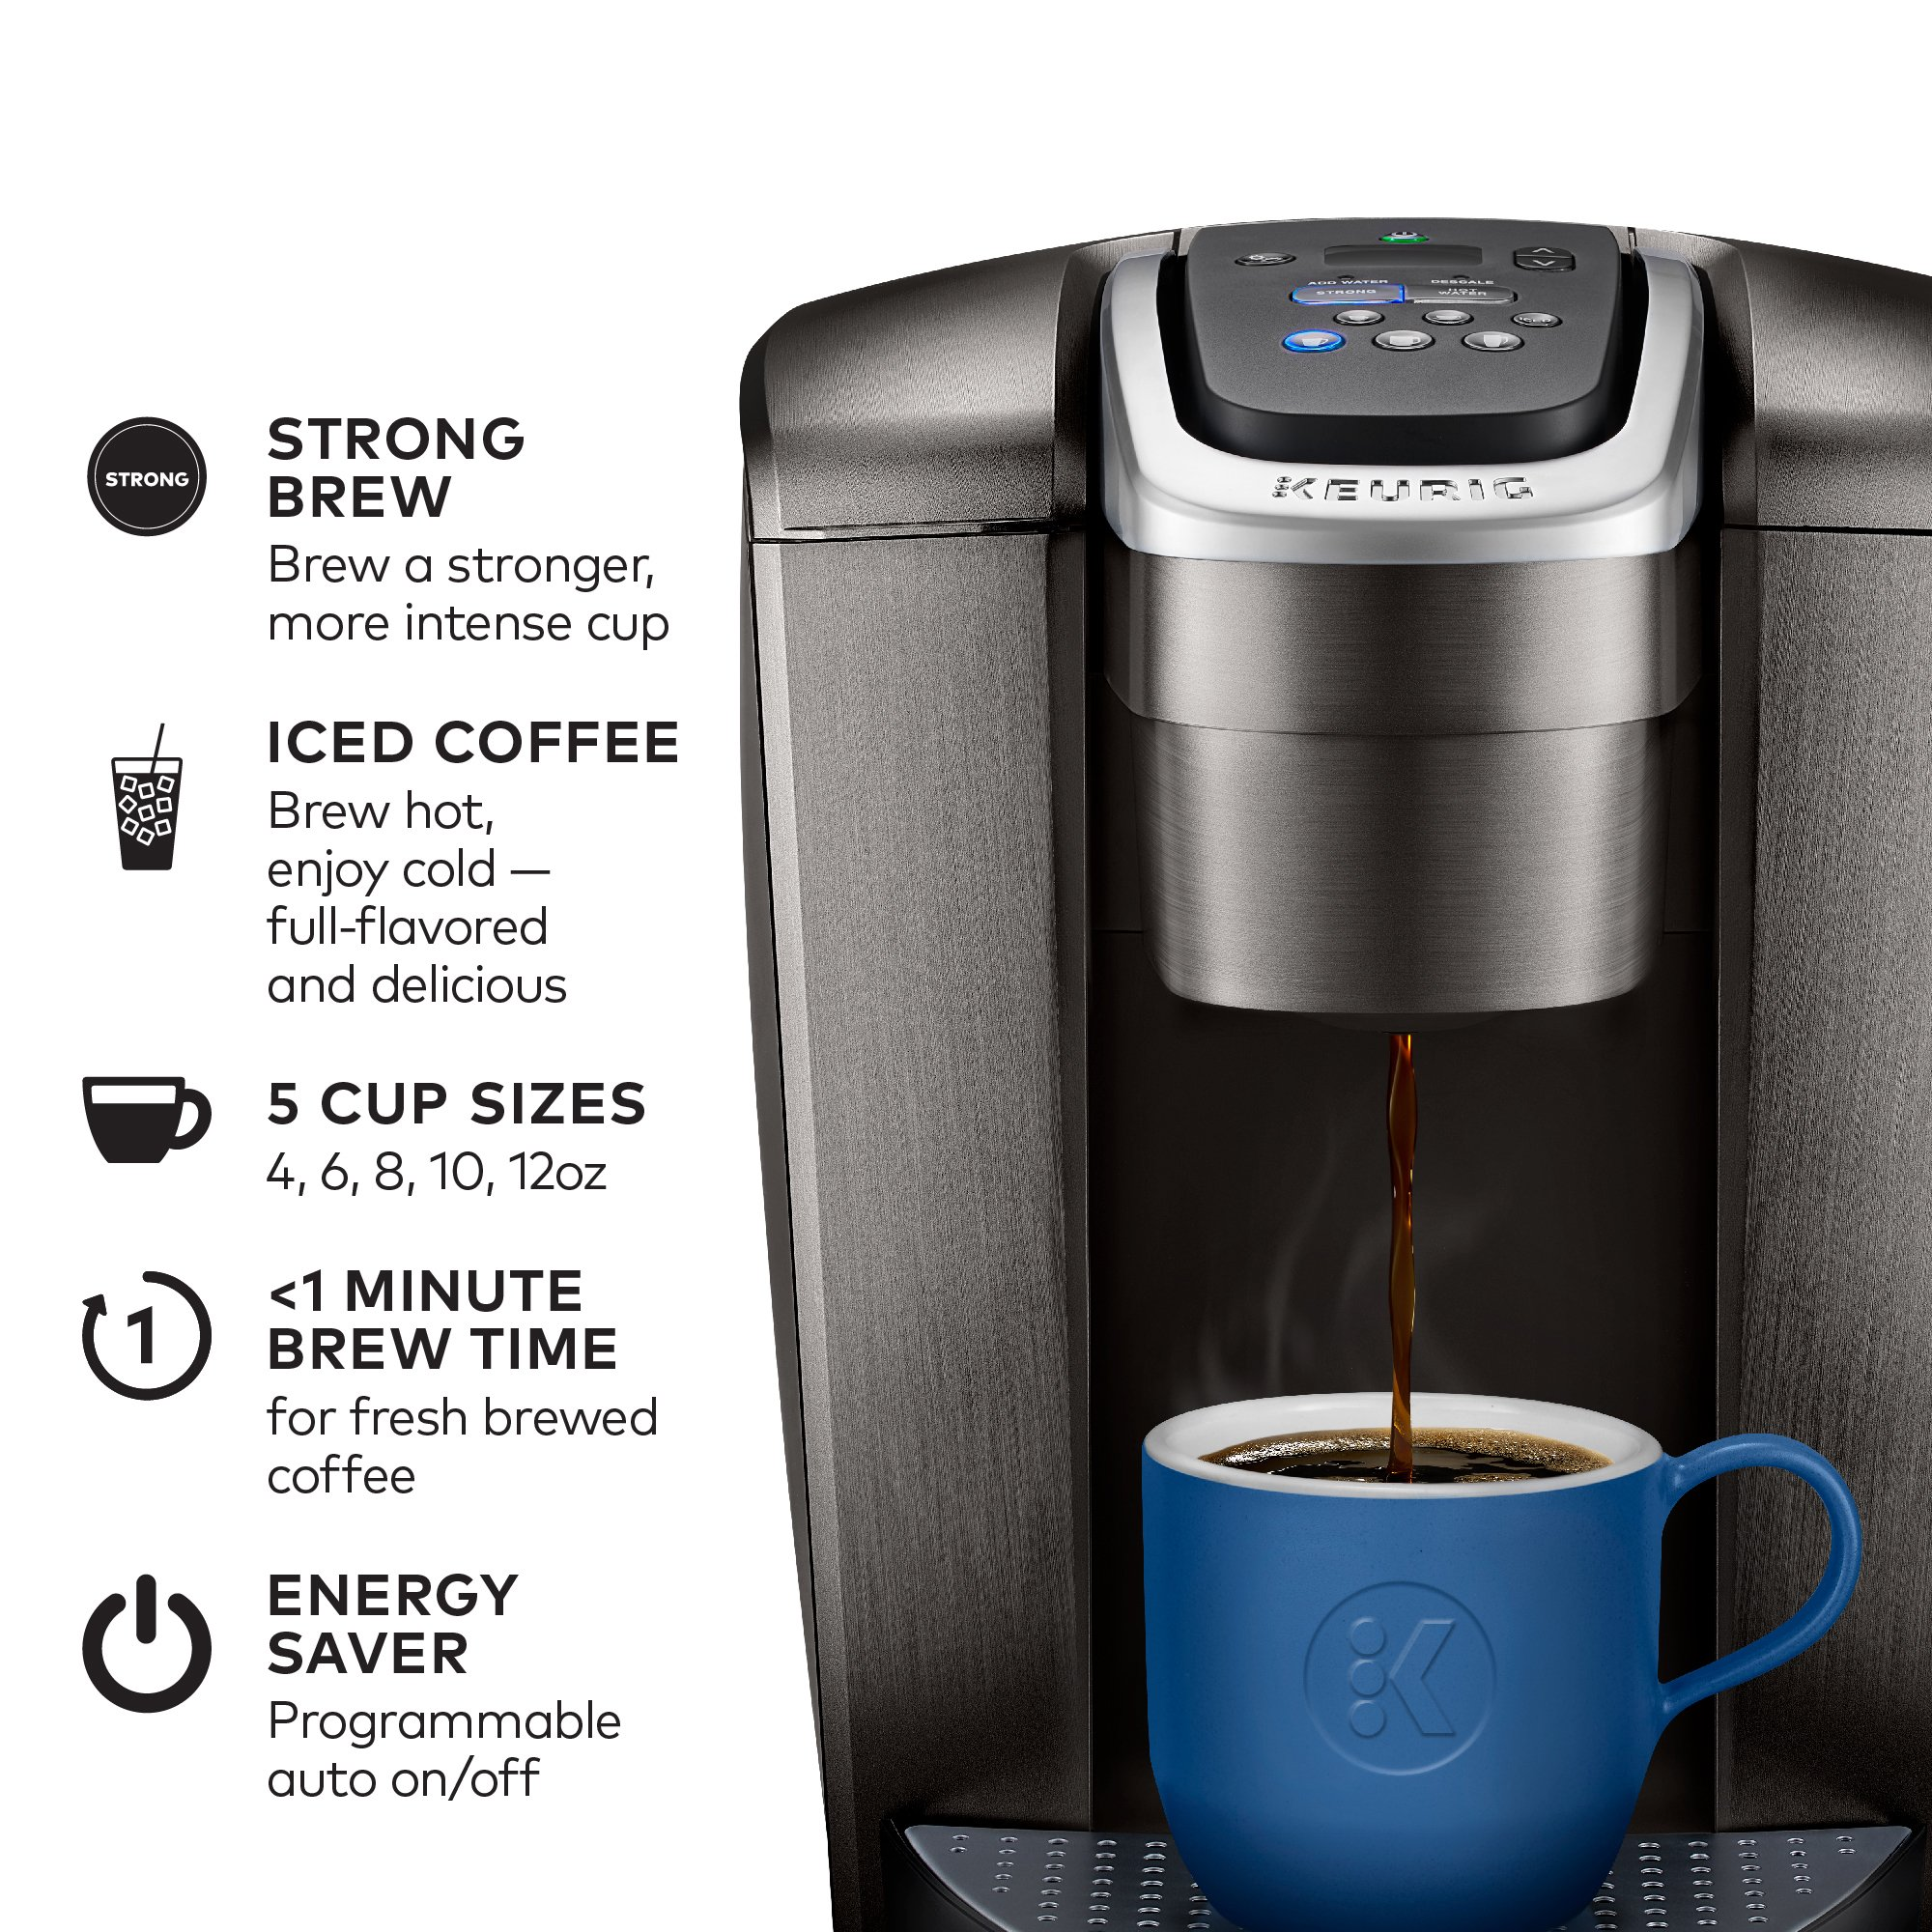 Keurig K-Elite K Single Serve K-Cup Pod Maker, with Strong Temperature Control, Iced Coffee Capability, 12oz Brew Size, Brushed Slate by Keurig (Image #2)